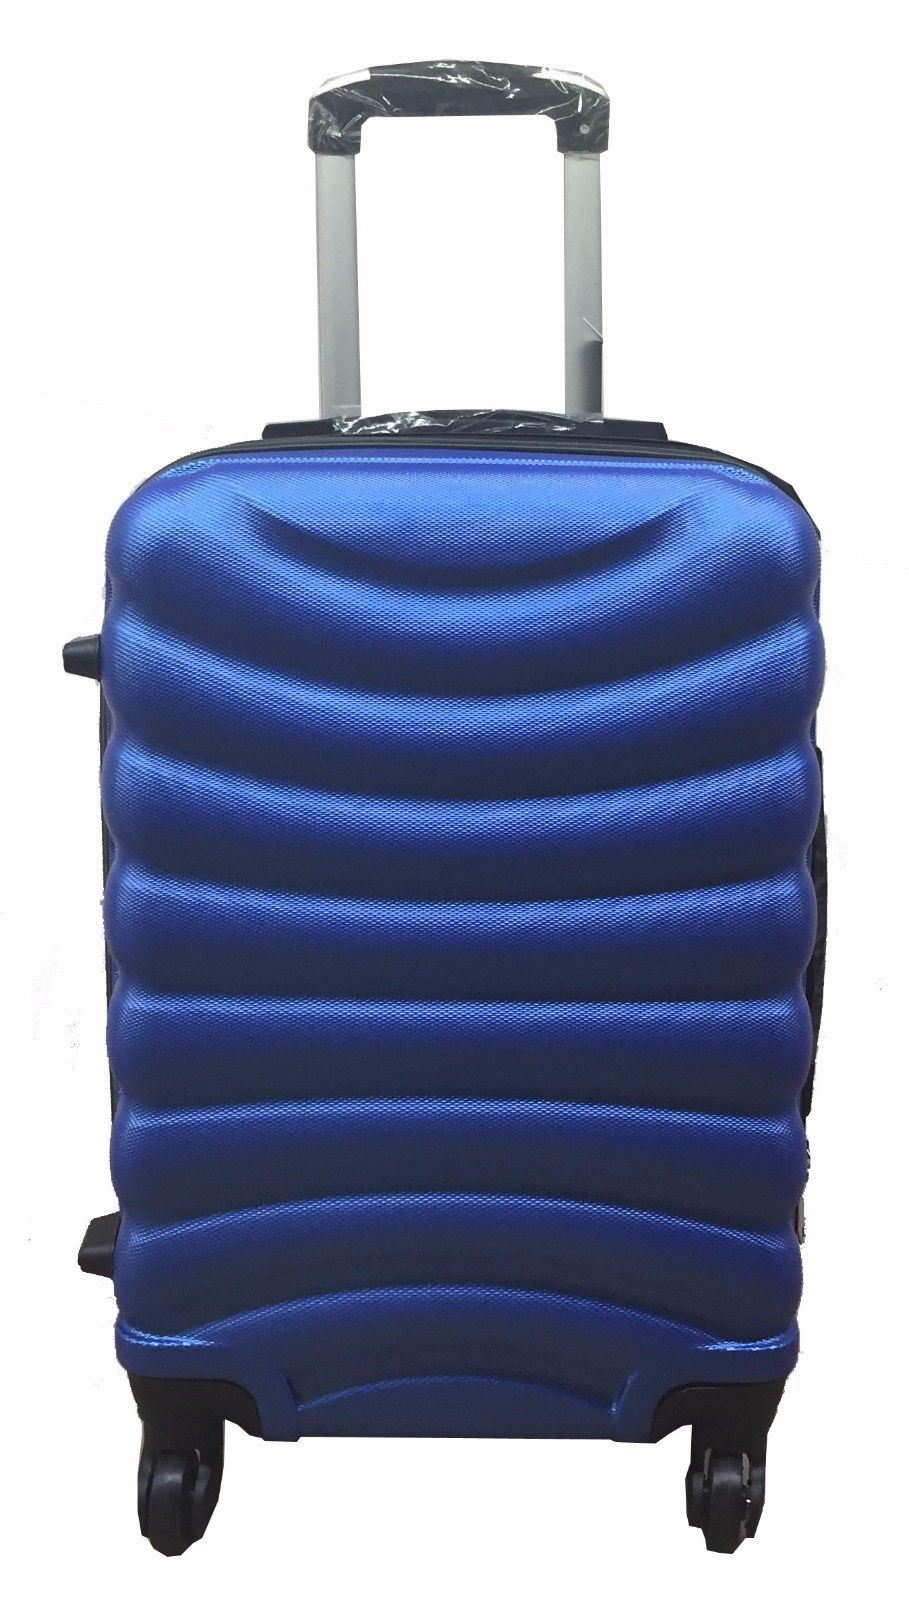 4 wheel hard shell spinner ribbed suitcase abs luggage. Black Bedroom Furniture Sets. Home Design Ideas